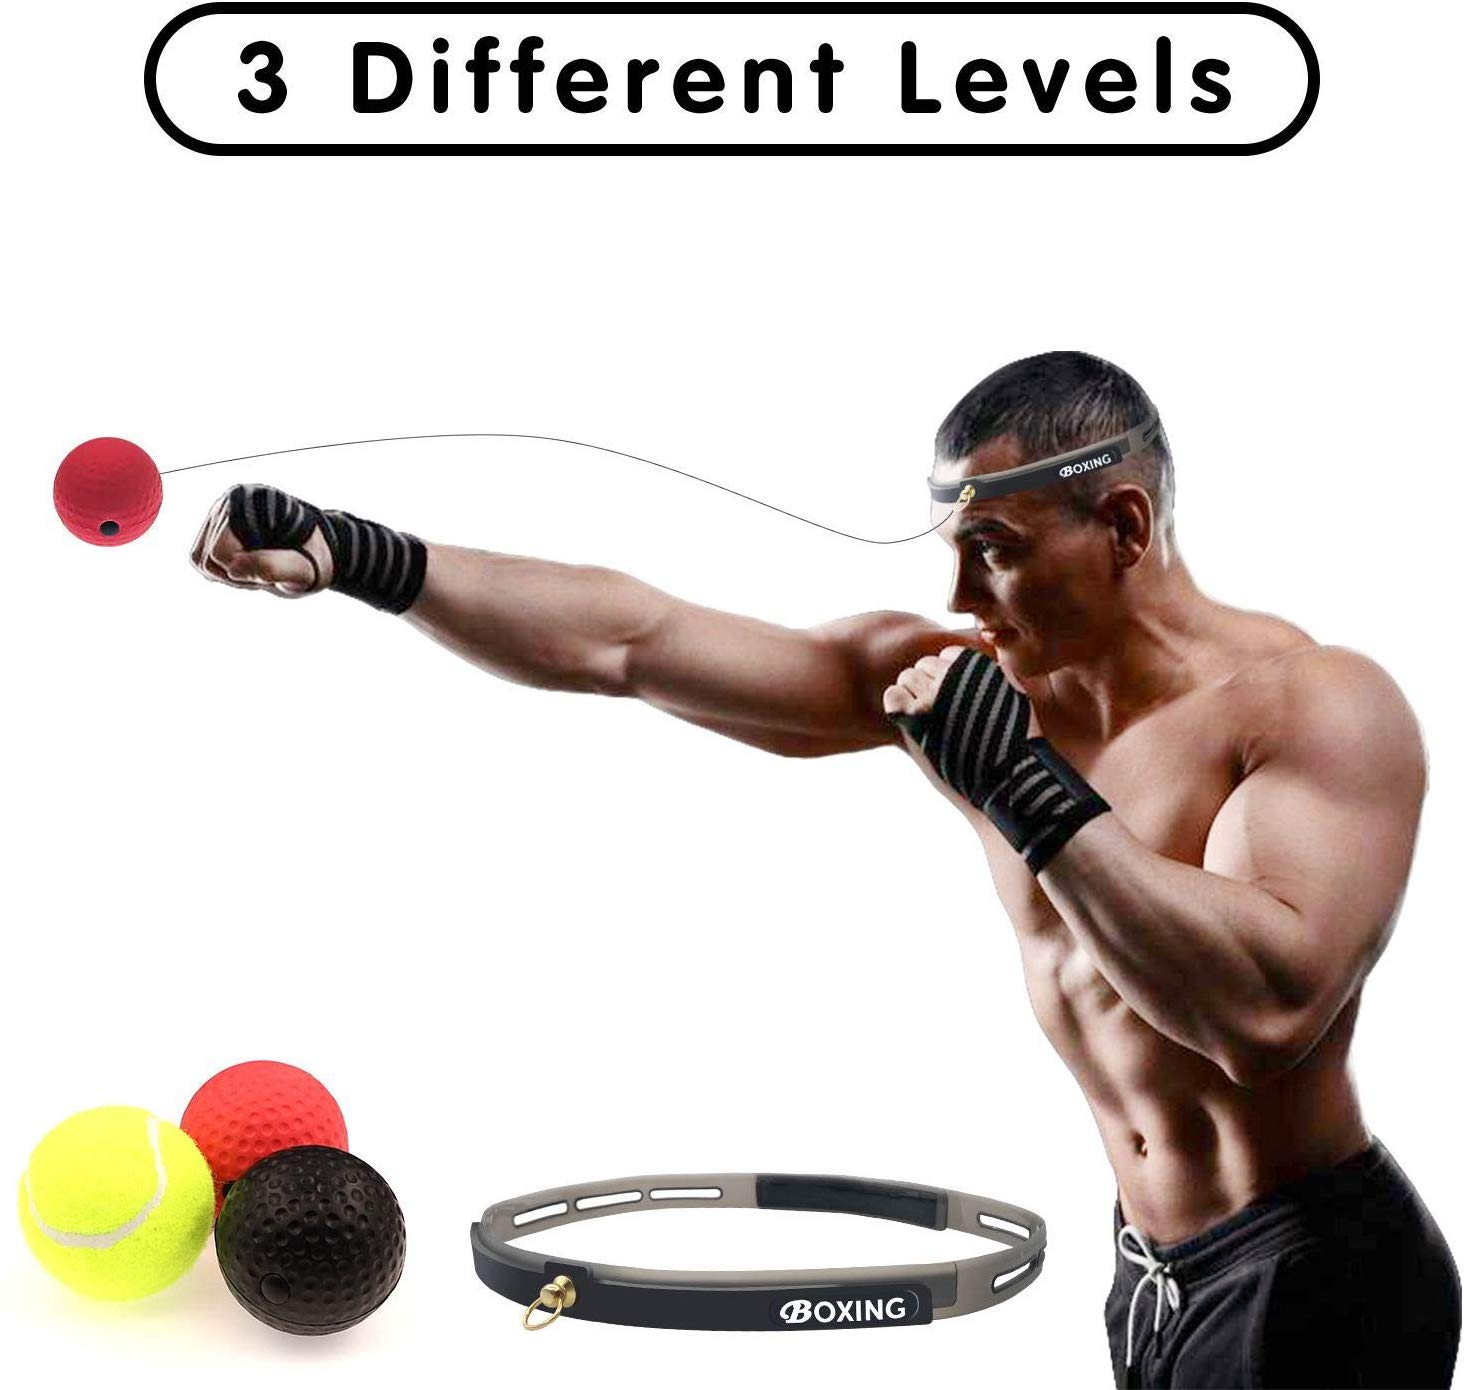 Boxing Ball On String Sports Speed Reactions MMA Fighting Training Karate Muay Thai Silicone Head Bands Kids Exercise Equipment